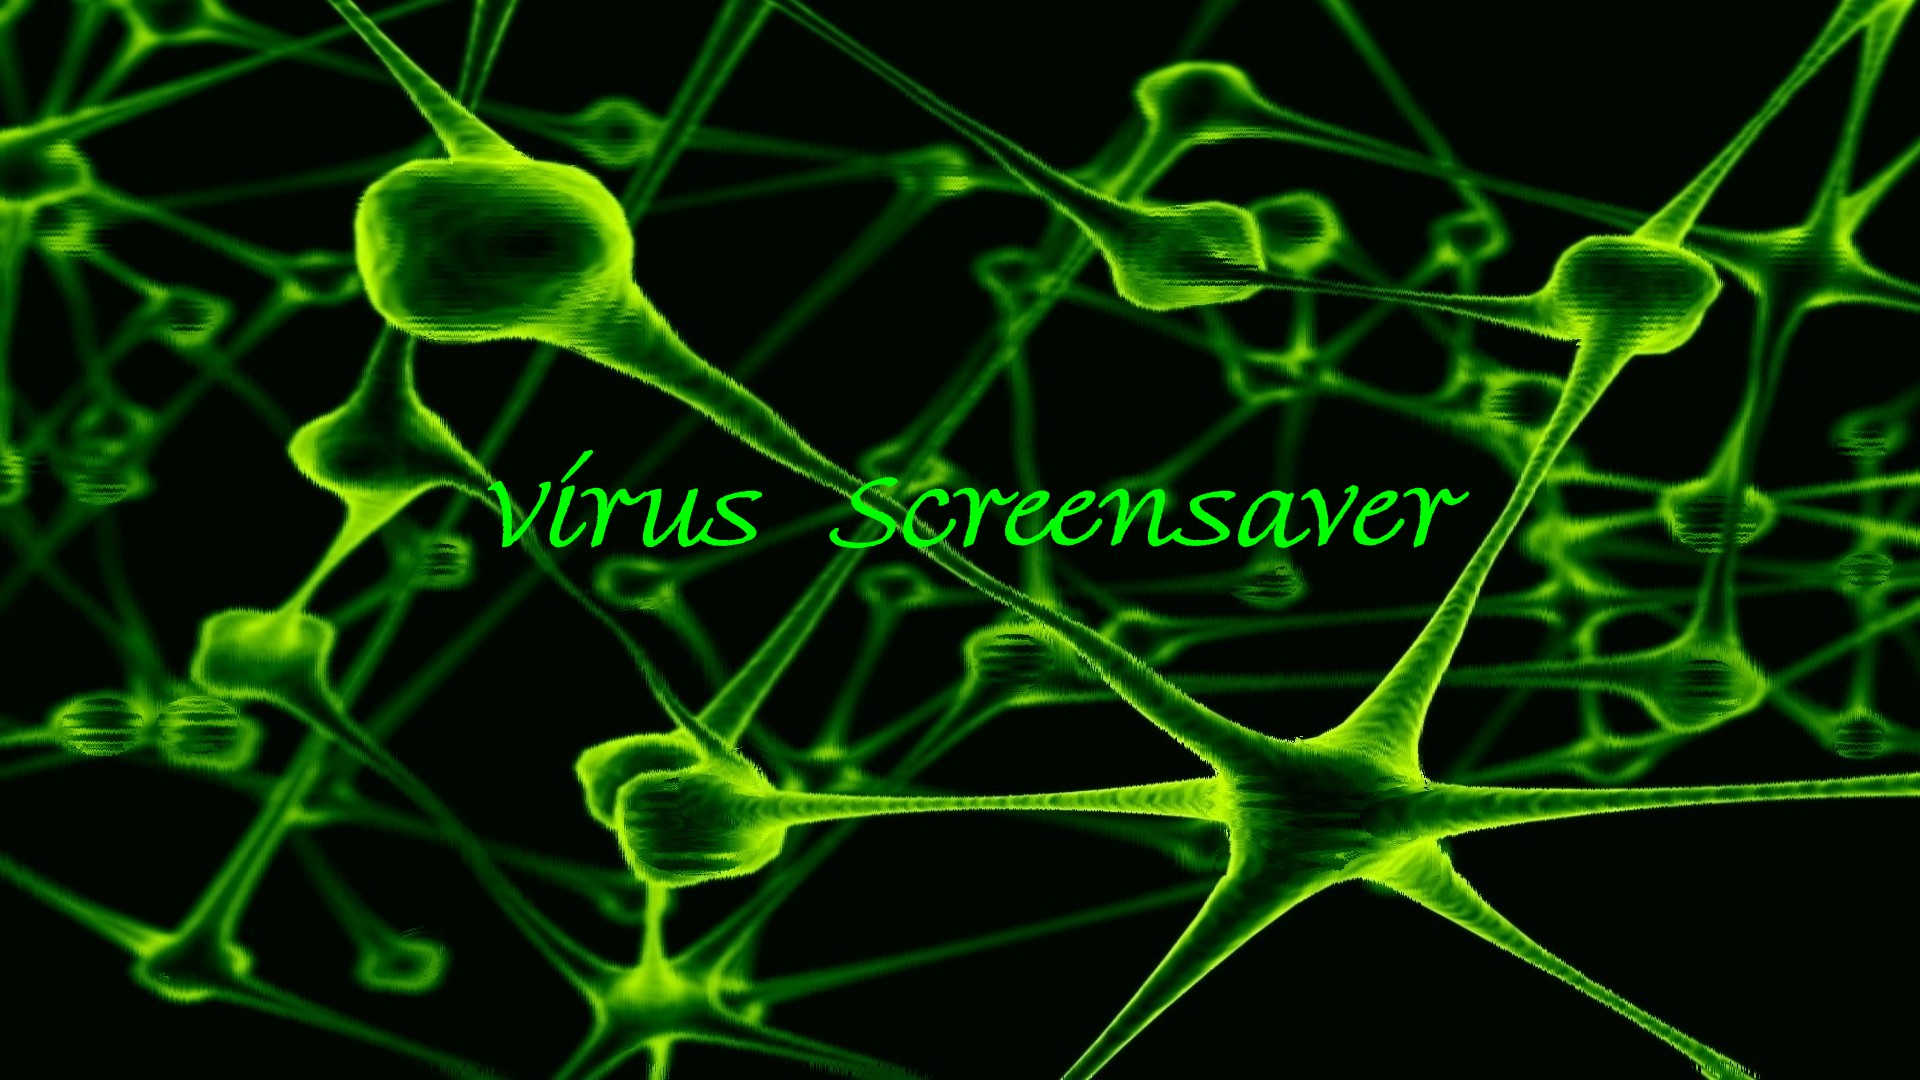 Virus wallpaper - 332968